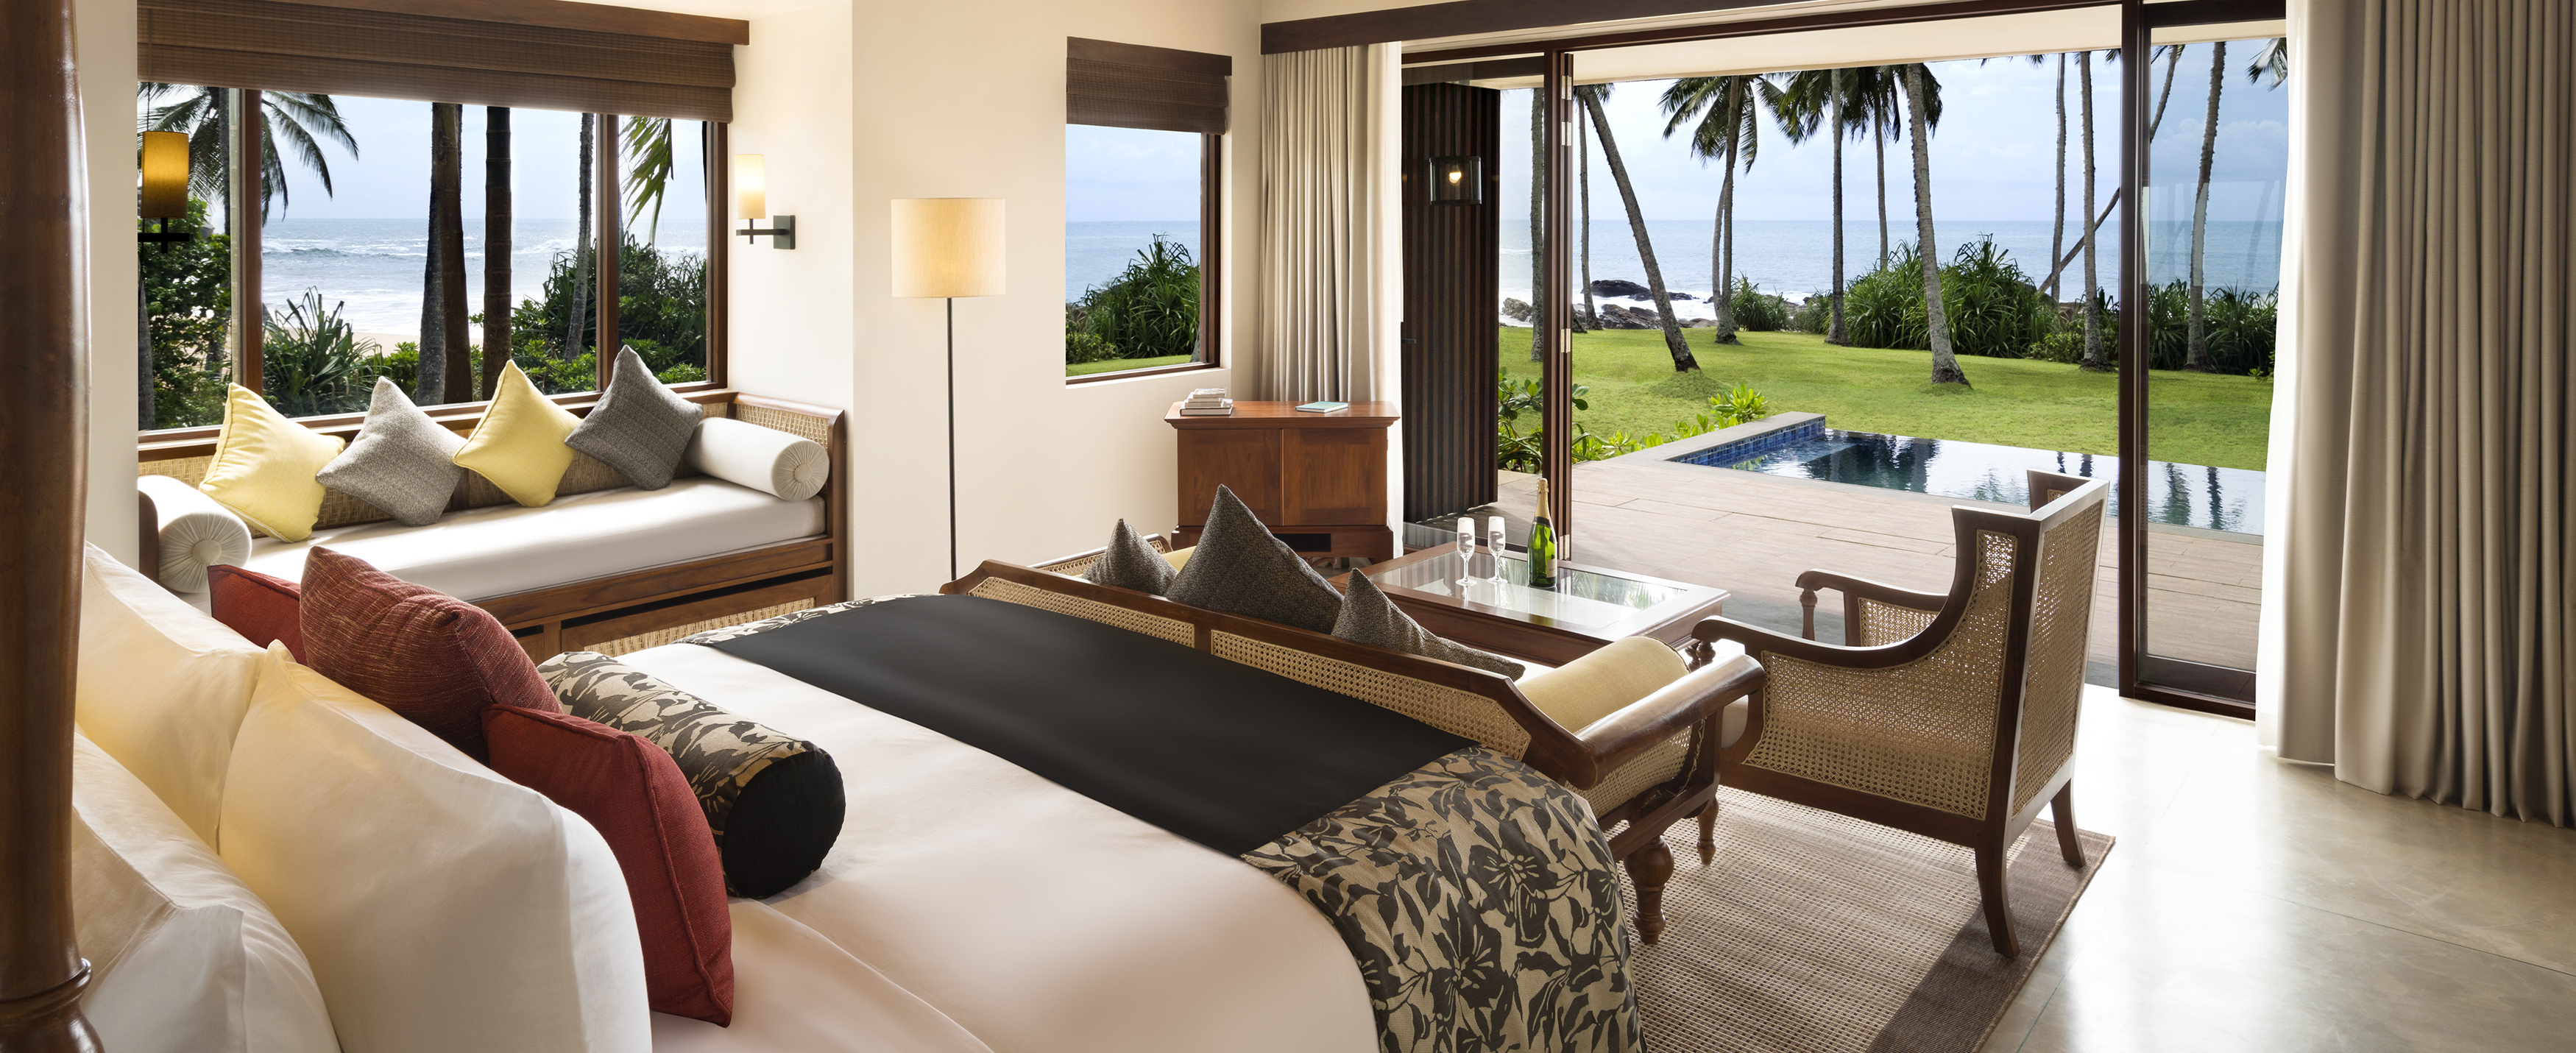 Beach-Villa-anantara-peace-haven